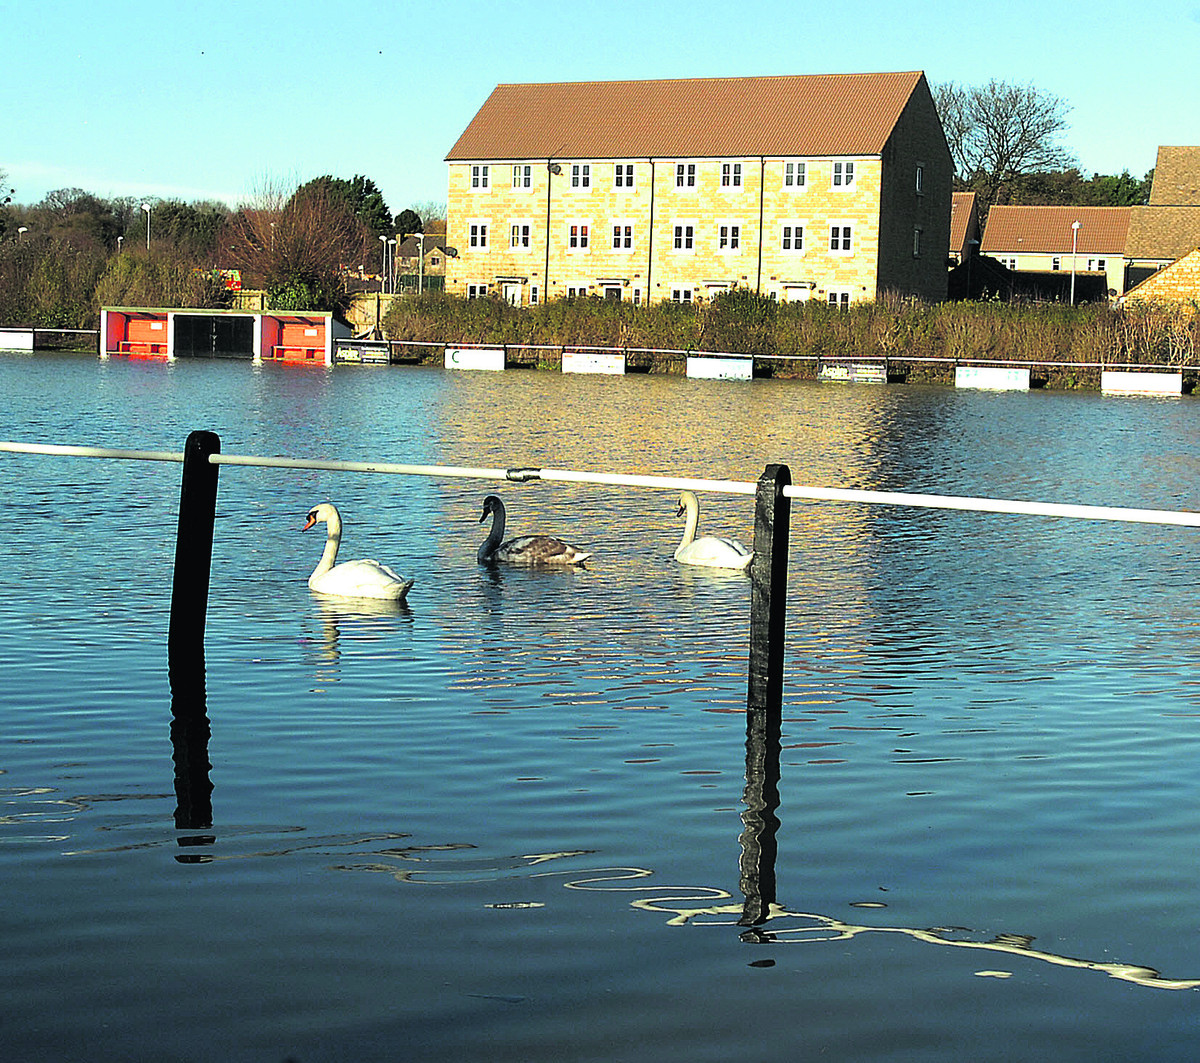 Swans go sailing by on Malmesbury Vics' flooded pitch on Christmas Eve